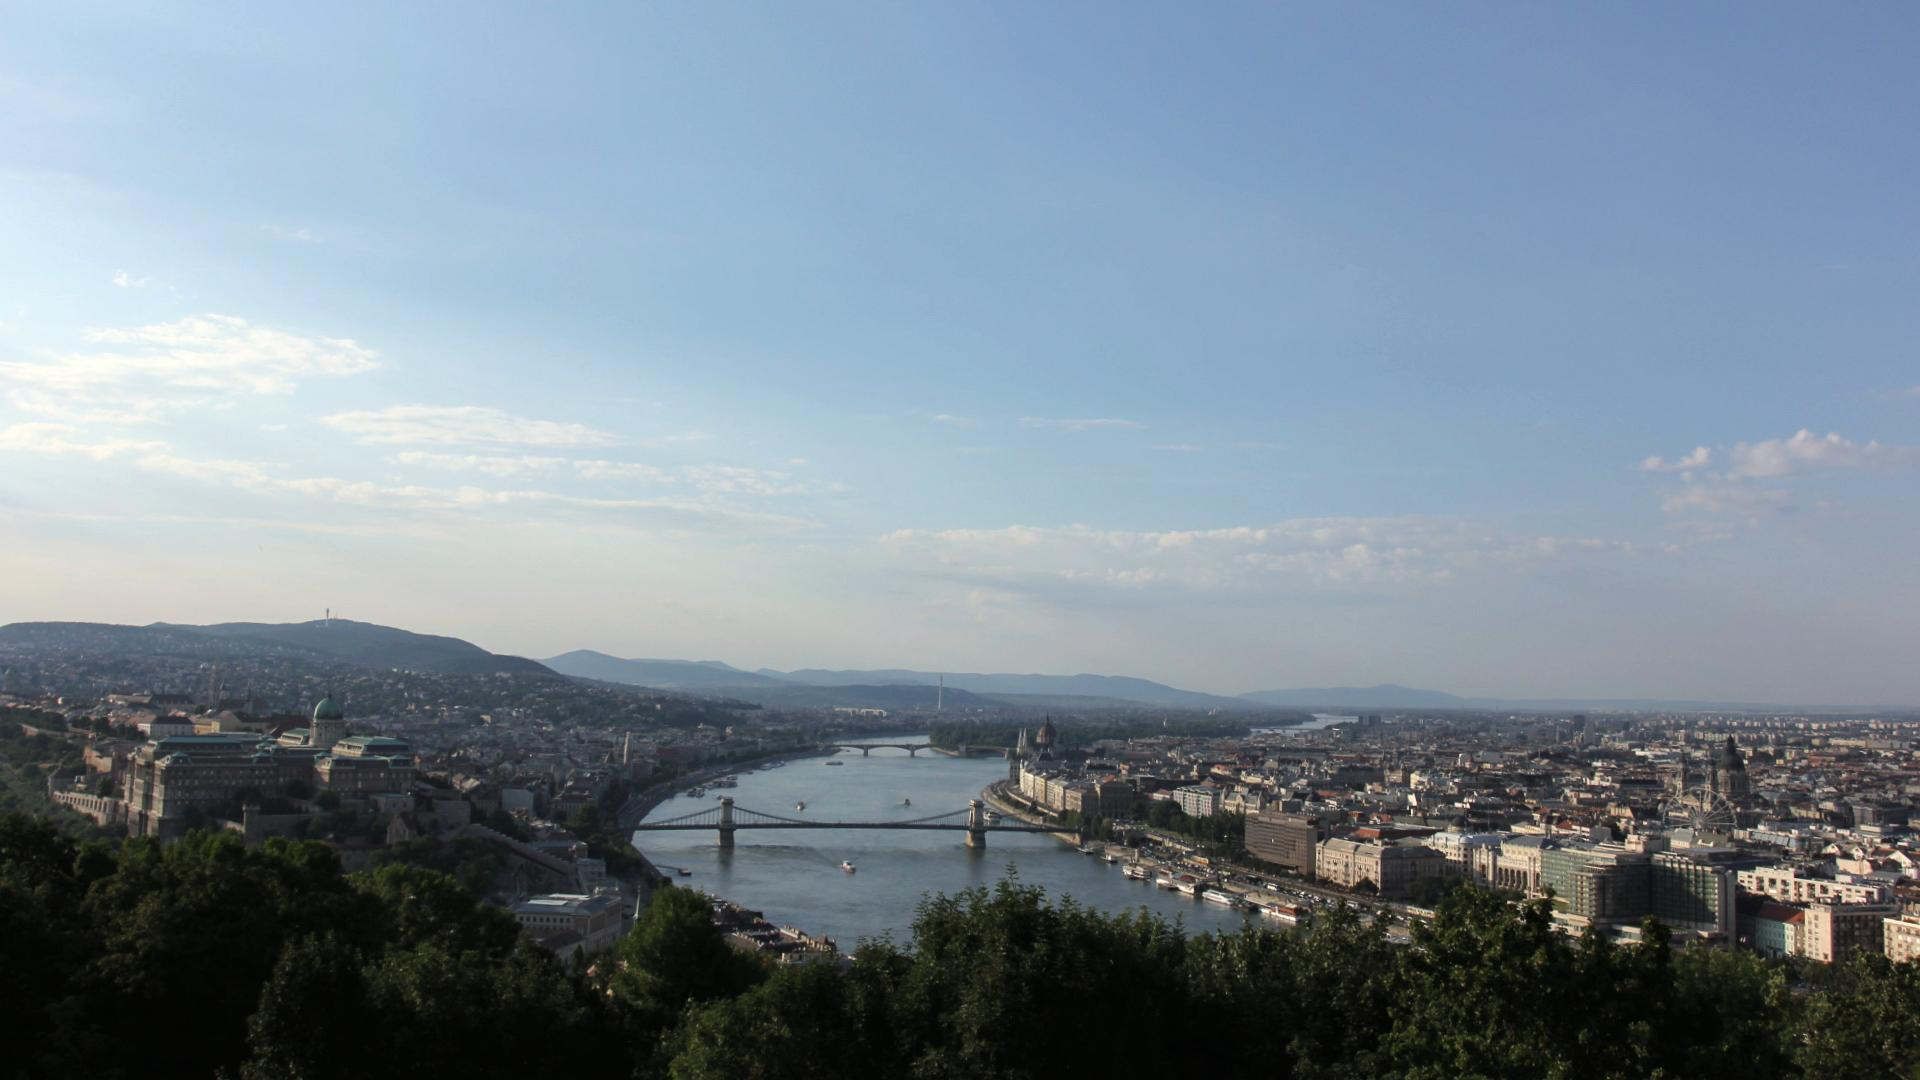 budapest view down river.jpg